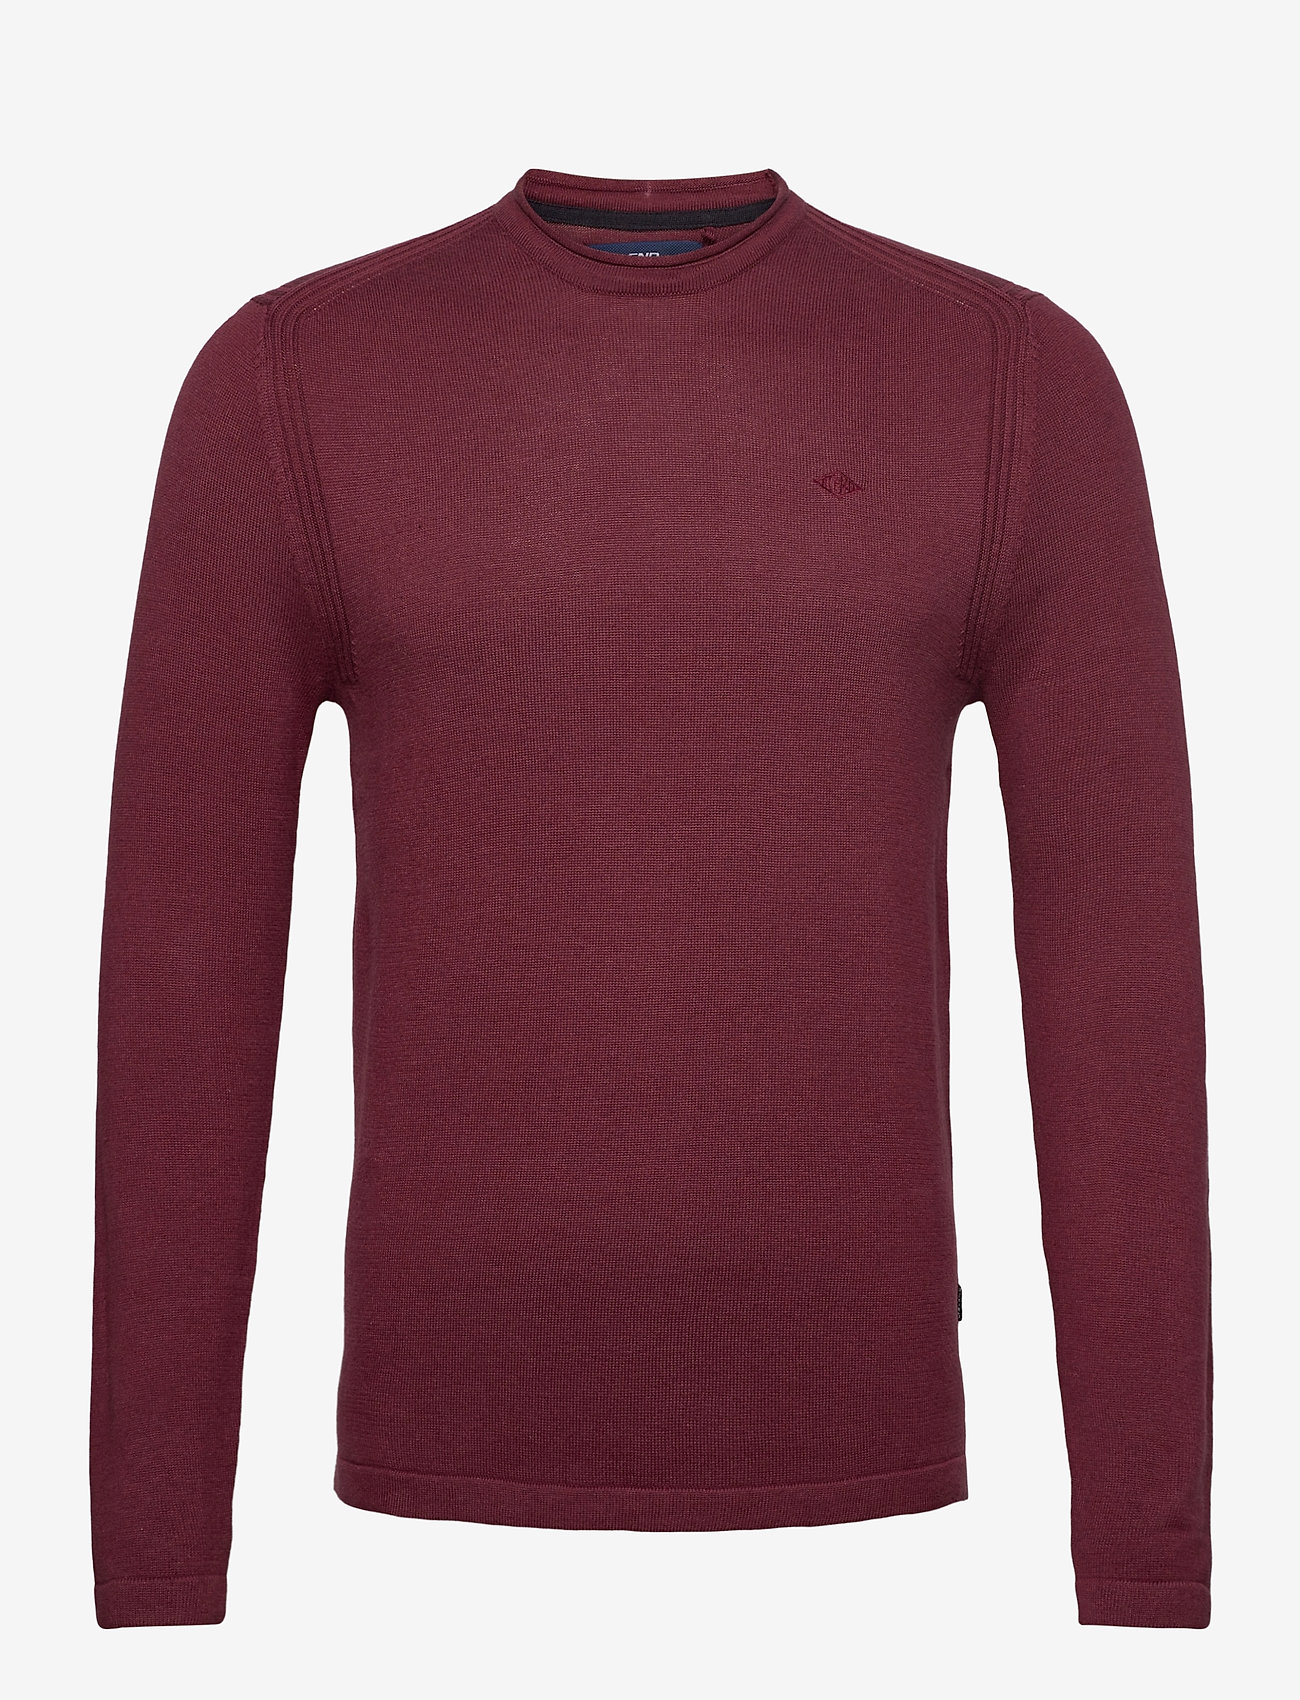 Blend - Pullover - basic knitwear - tawny port - 0